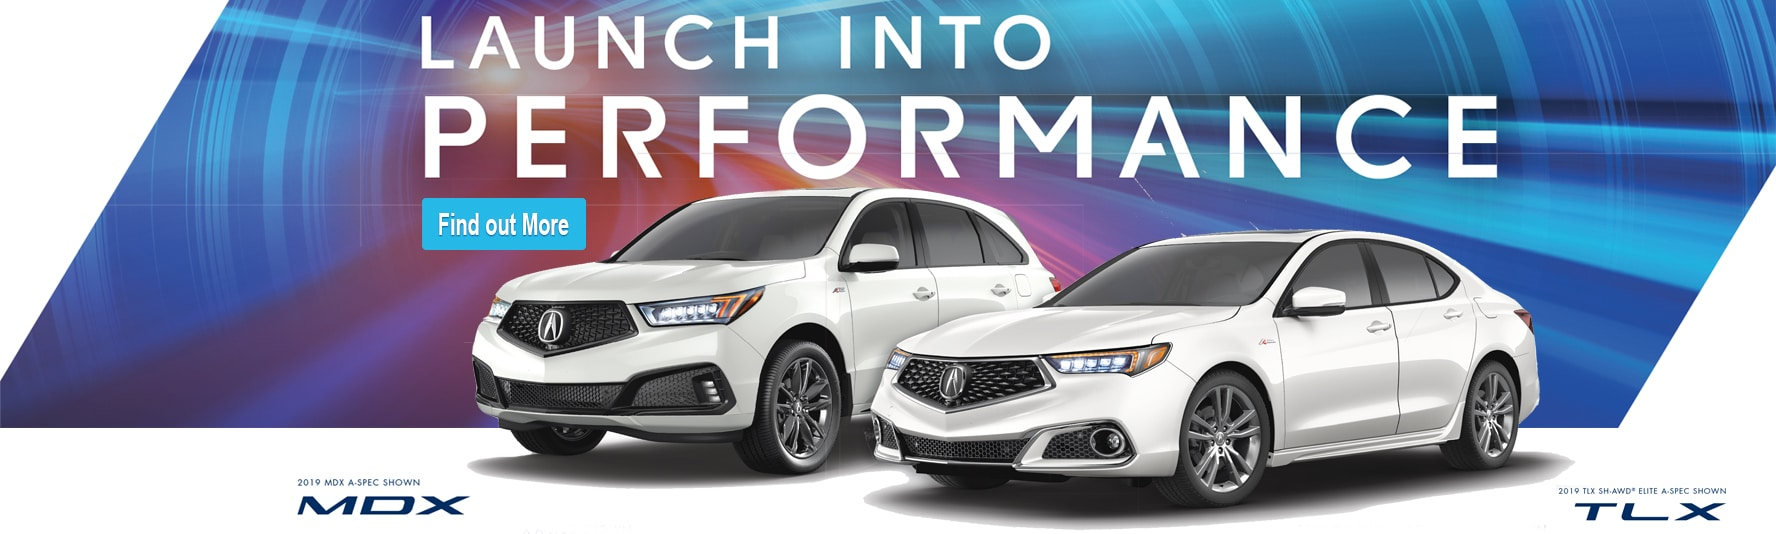 New And Used Cars Sterne Acura In Aurora New Vehicles And Used Cars For Sale